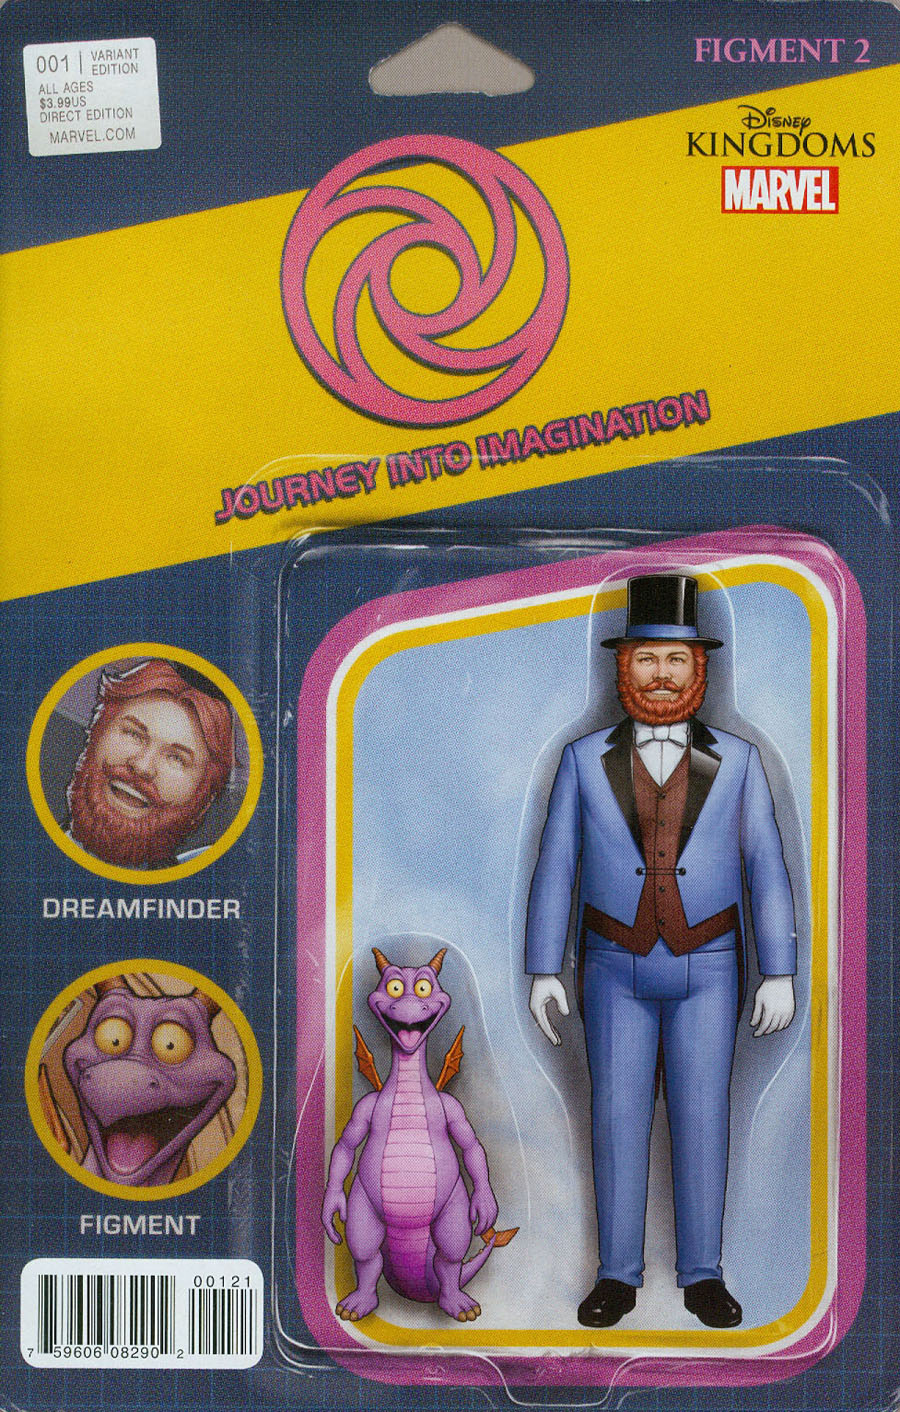 Disney Kingdoms Figment 2 #1 Cover B Variant John Tyler Christopher Action Figure Cover